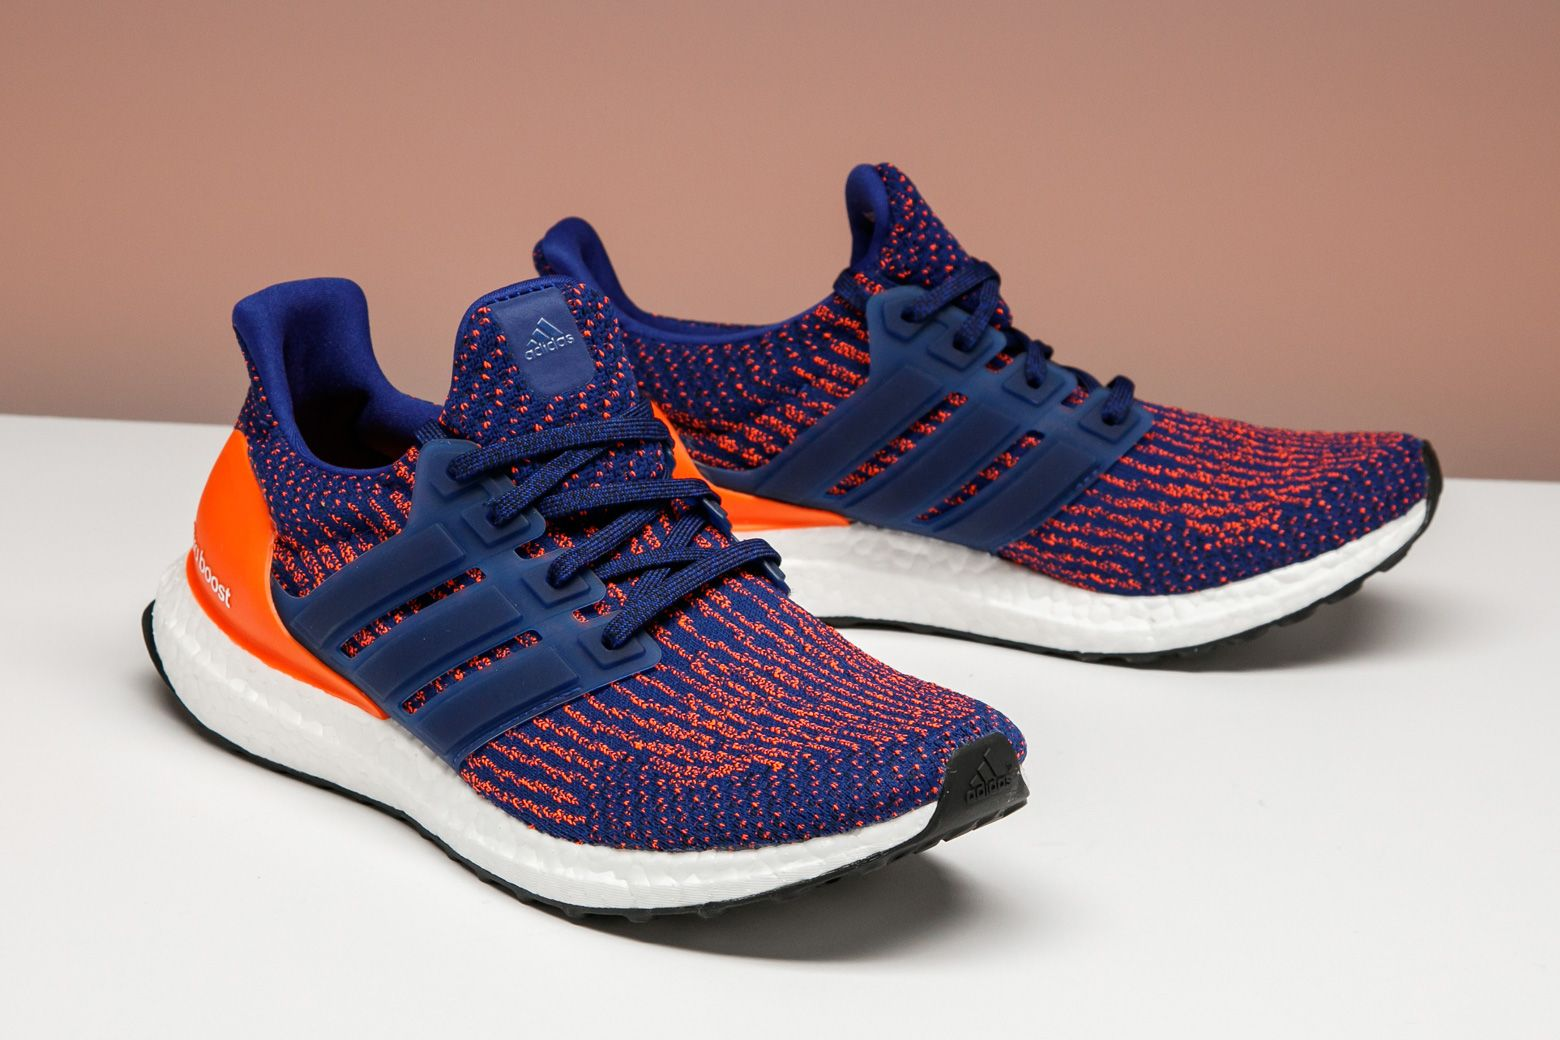 save off f01db 20012 adidas thought outside of the box when designing this vibrant Ultra Boost  3.0